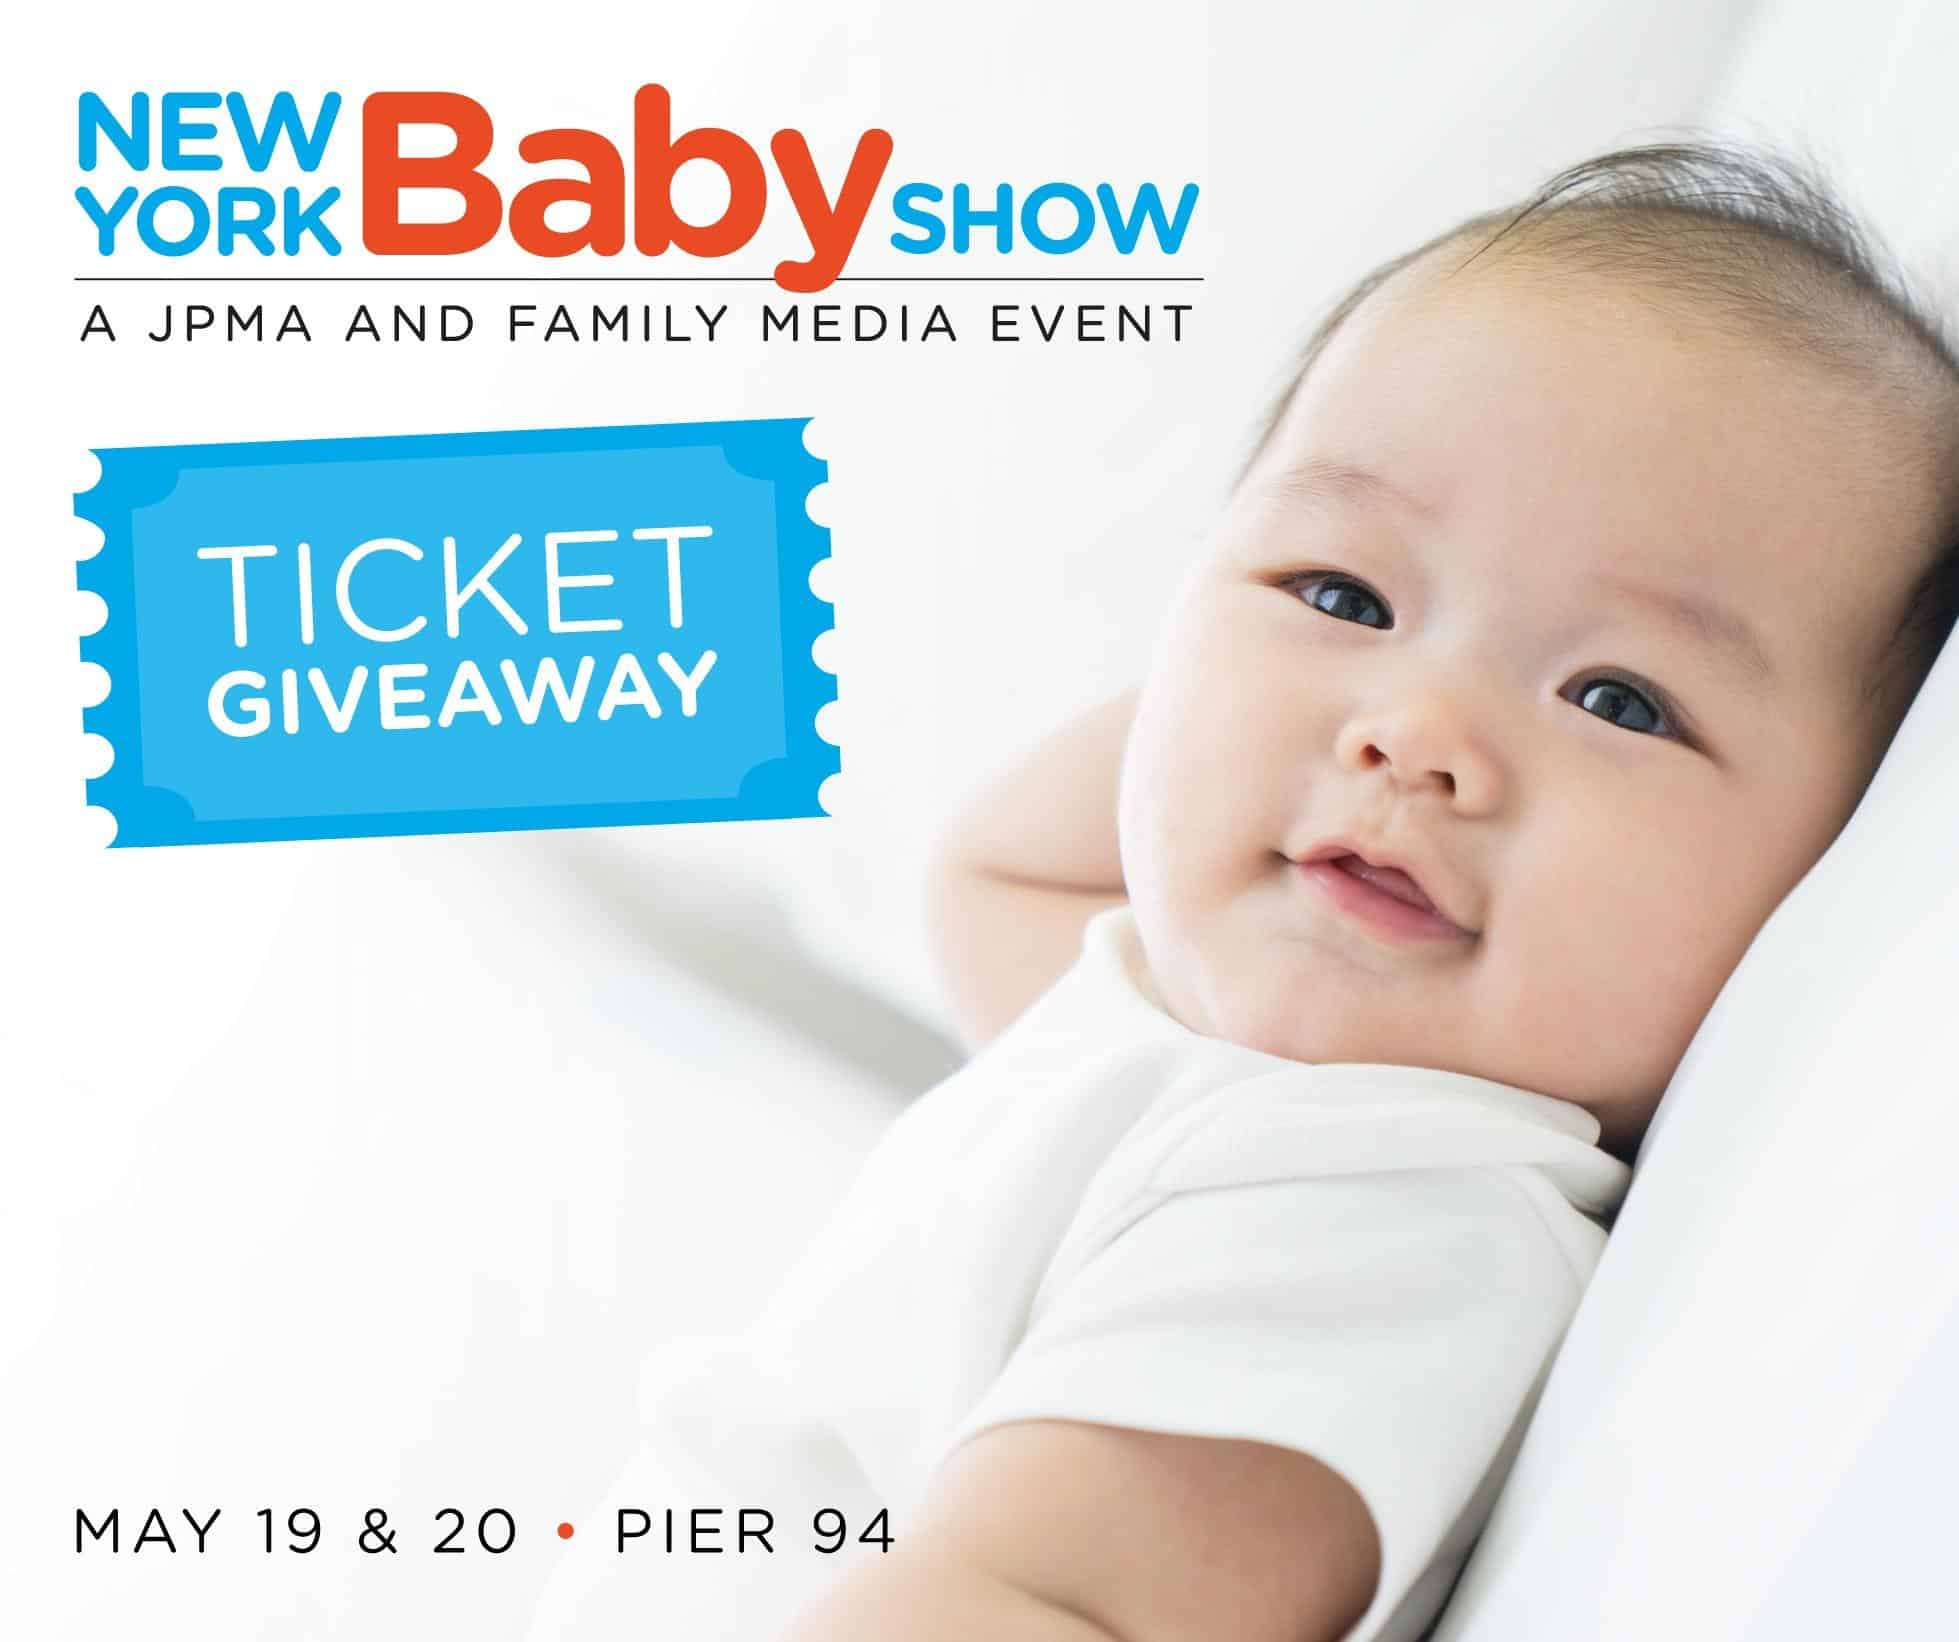 86ed53ee9 The 2018 New York Baby Show, on May 19-20 from 10:00AM-4:00PM at Pier 94,  is the largest baby show for new and expectant parents in the country.